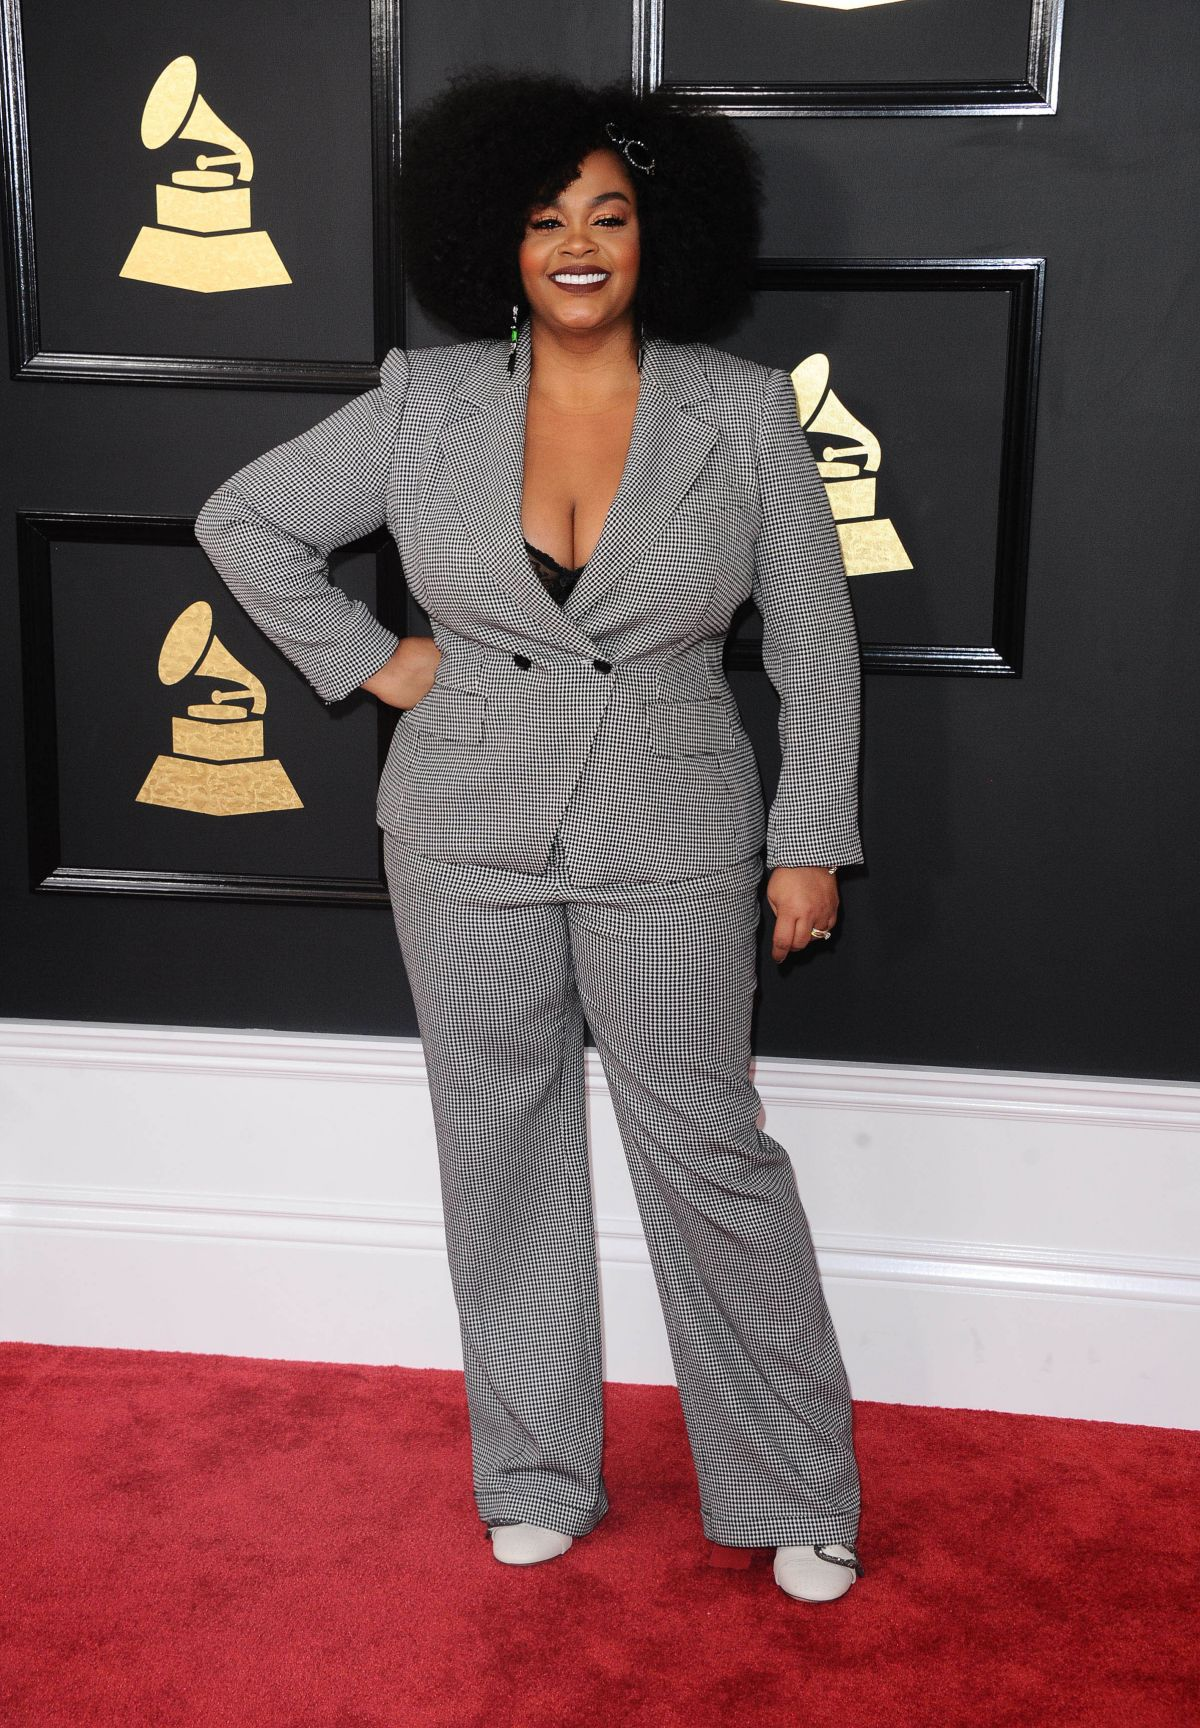 JILL SCOTT at 59th Annual Grammy Awards in Los Angeles 02/12/2017